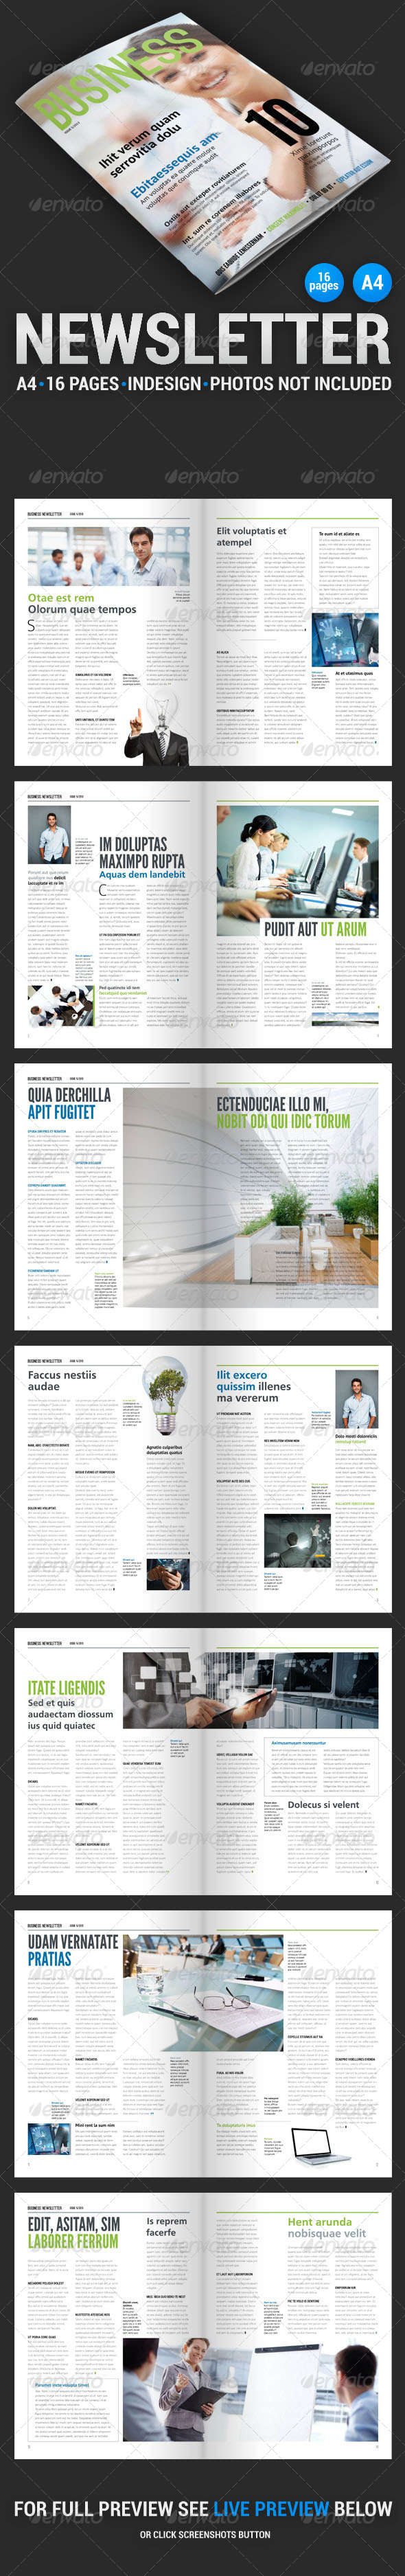 Business Newsletter 2 - Newsletters Print Templates